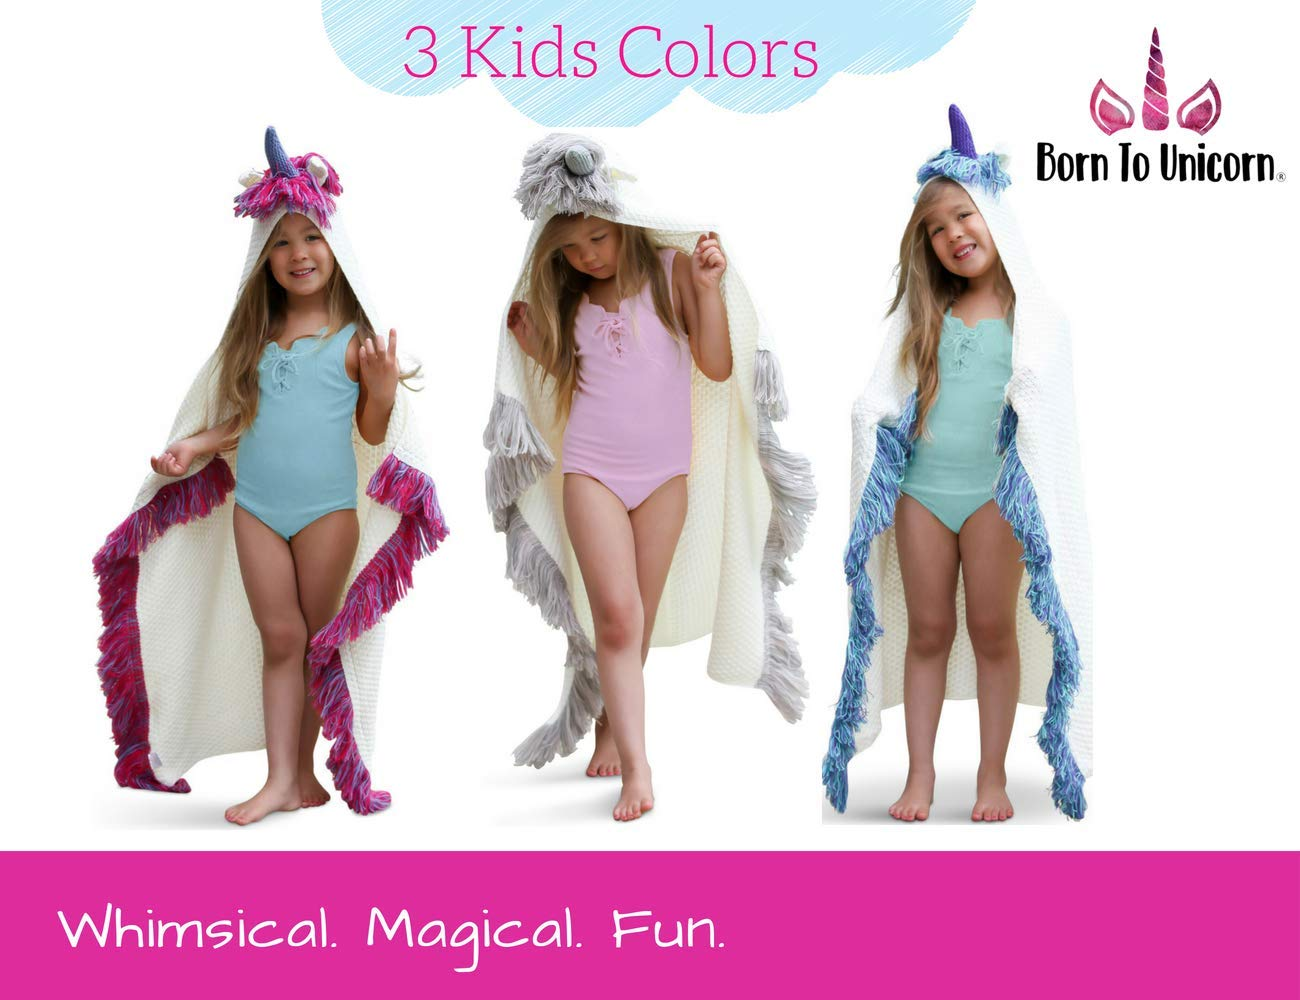 Born To Unicorn Blanket for Girls- Hooded, Kids Pink, Purple Wearable Crochet Knit w/Hood Throw Blankets Wrap, Toddlers Cute Plush Knitted Hoodie, Soft Kids Blanket Gift, Cozy Magic Cloak w/Hood by Born To Unicorn (Image #7)